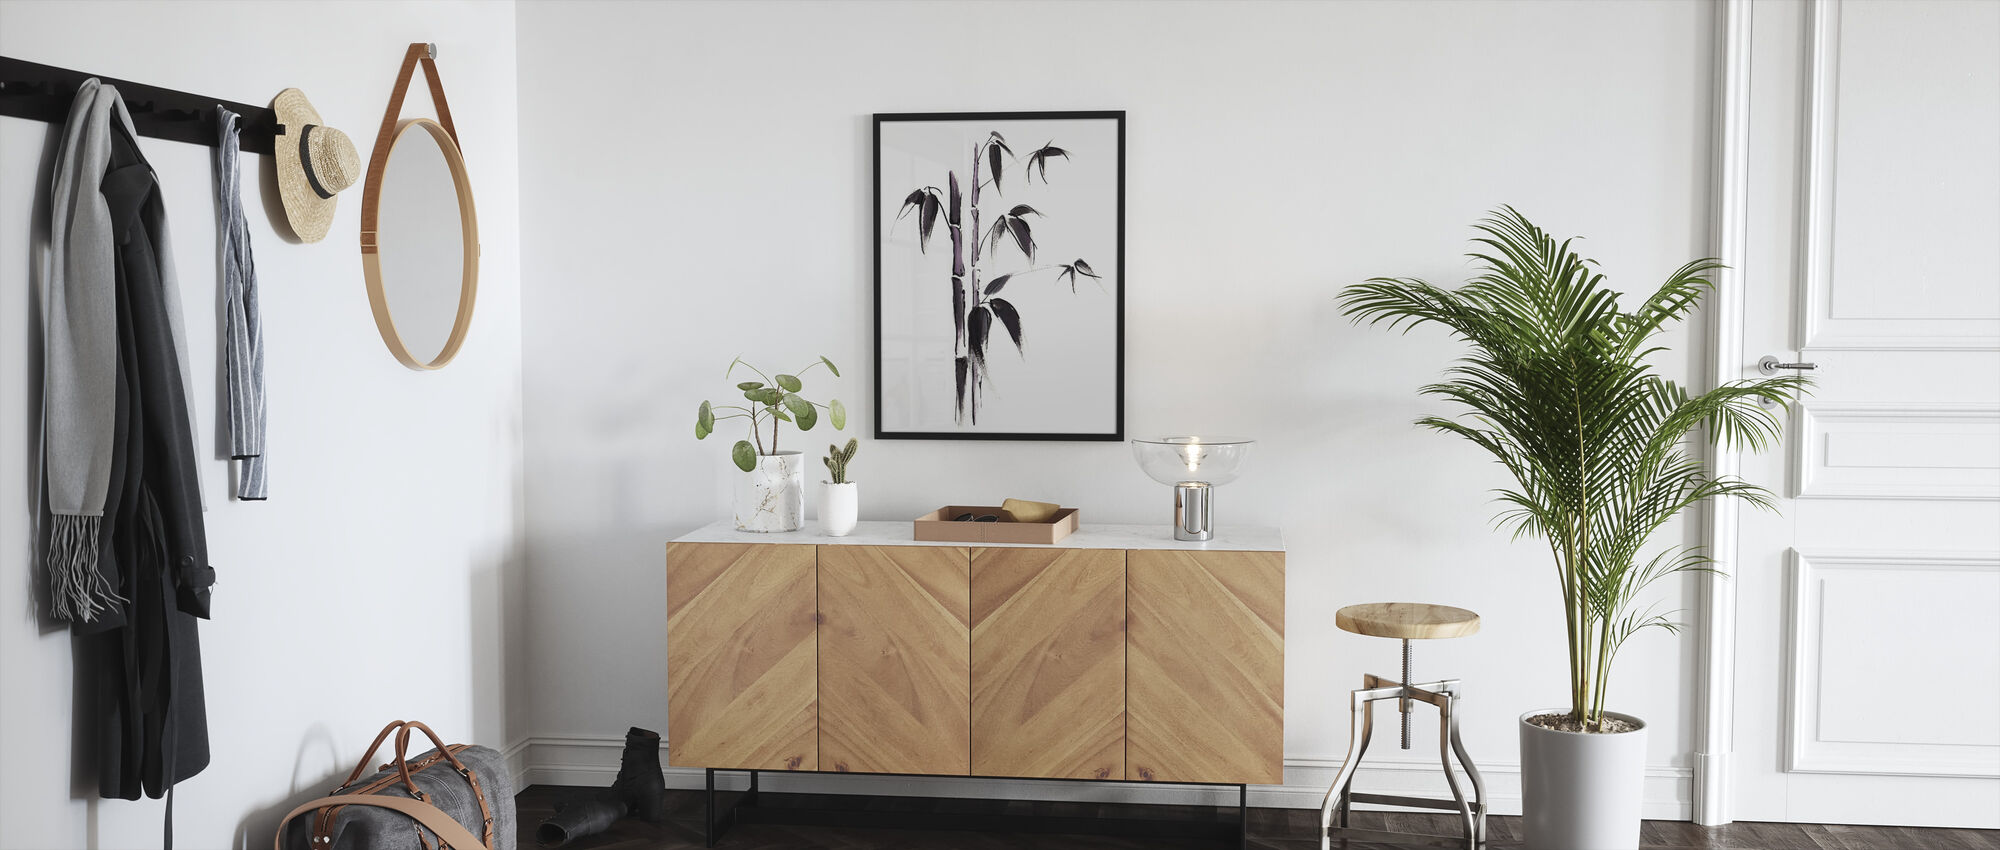 Bamboo Illustration - Framed print - Hallway